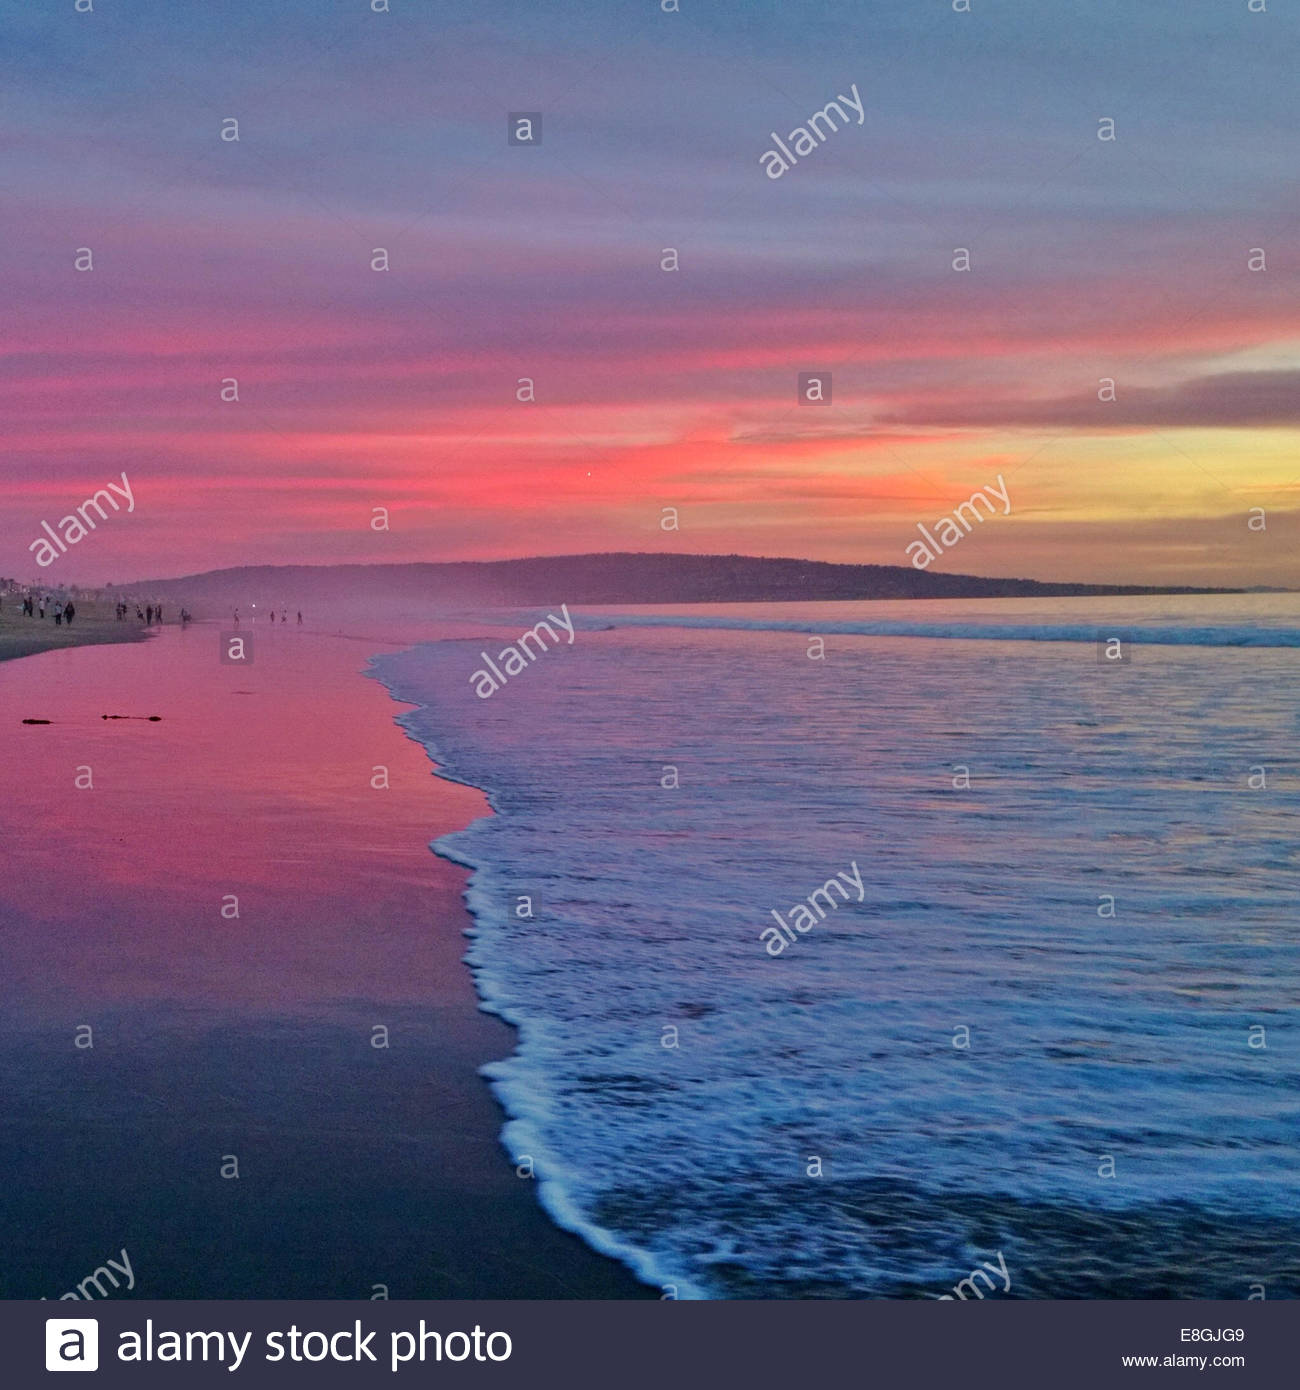 Landscape with pink sunset - Stock Image